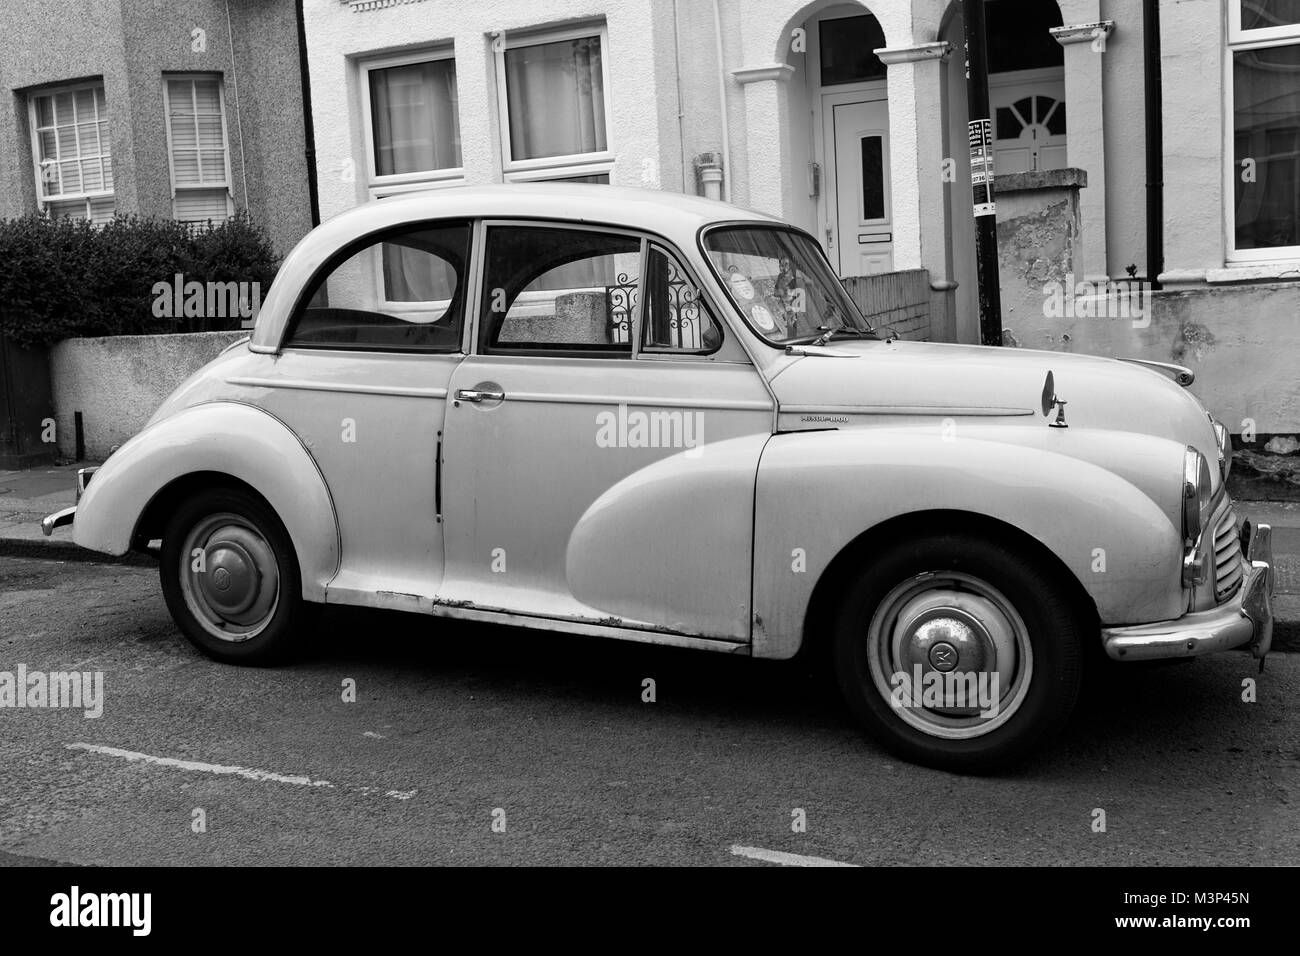 Magnificent Old Car Uk Photos - Classic Cars Ideas - boiq.info